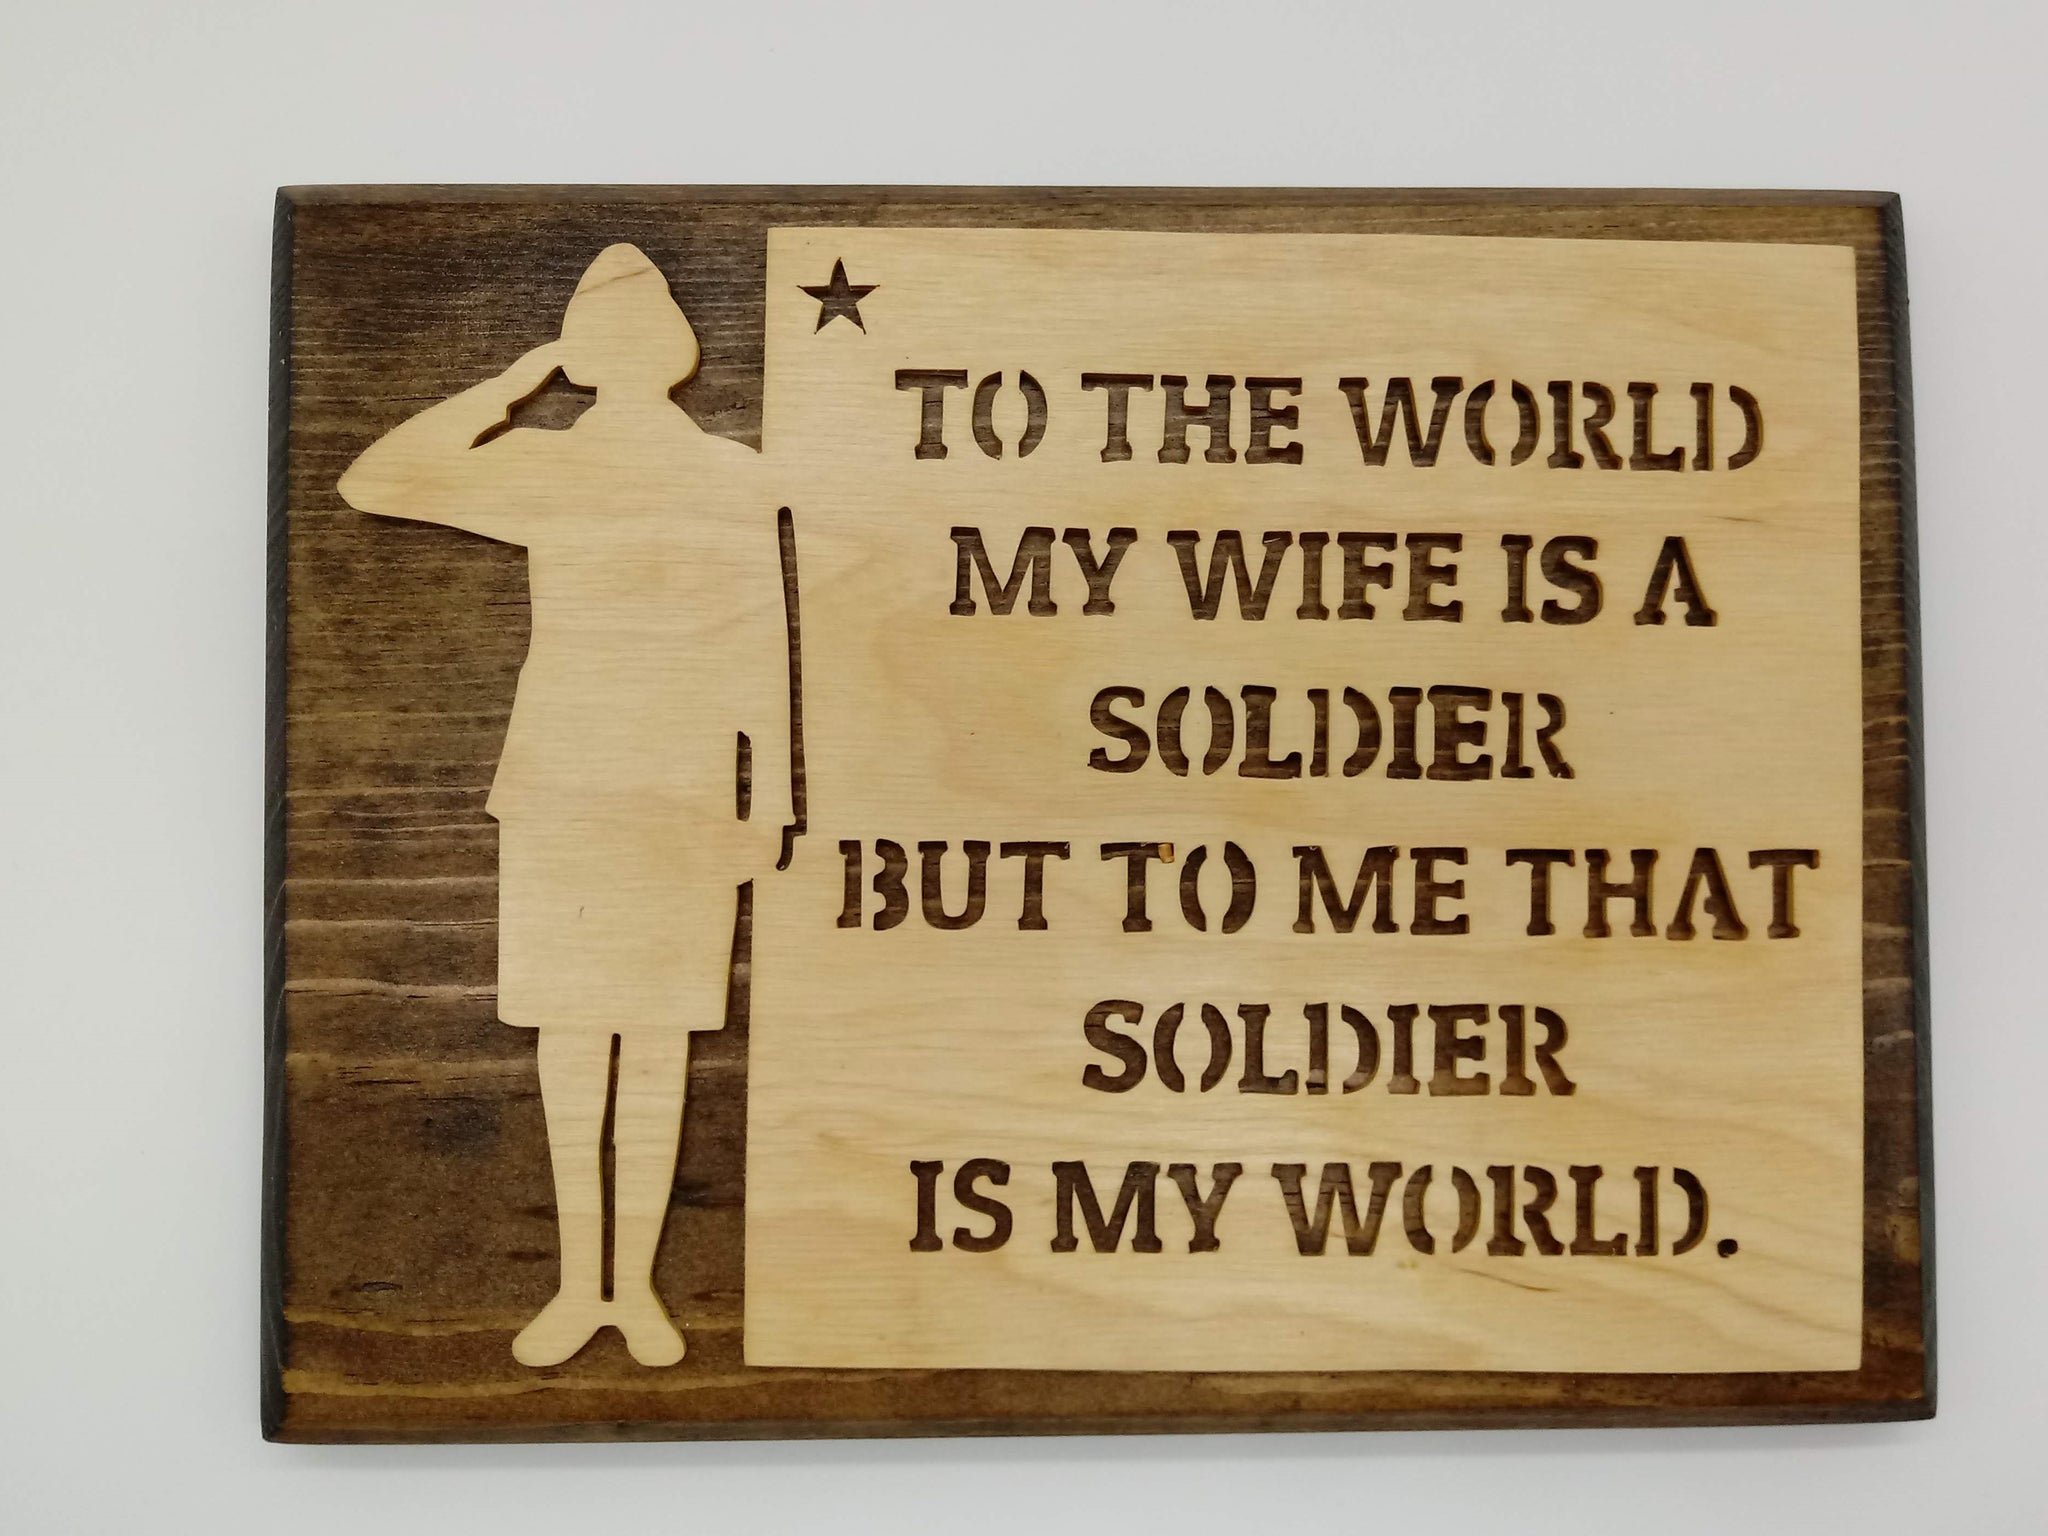 Soldier Wife My World Wall Plaque - Kripp's Kreations